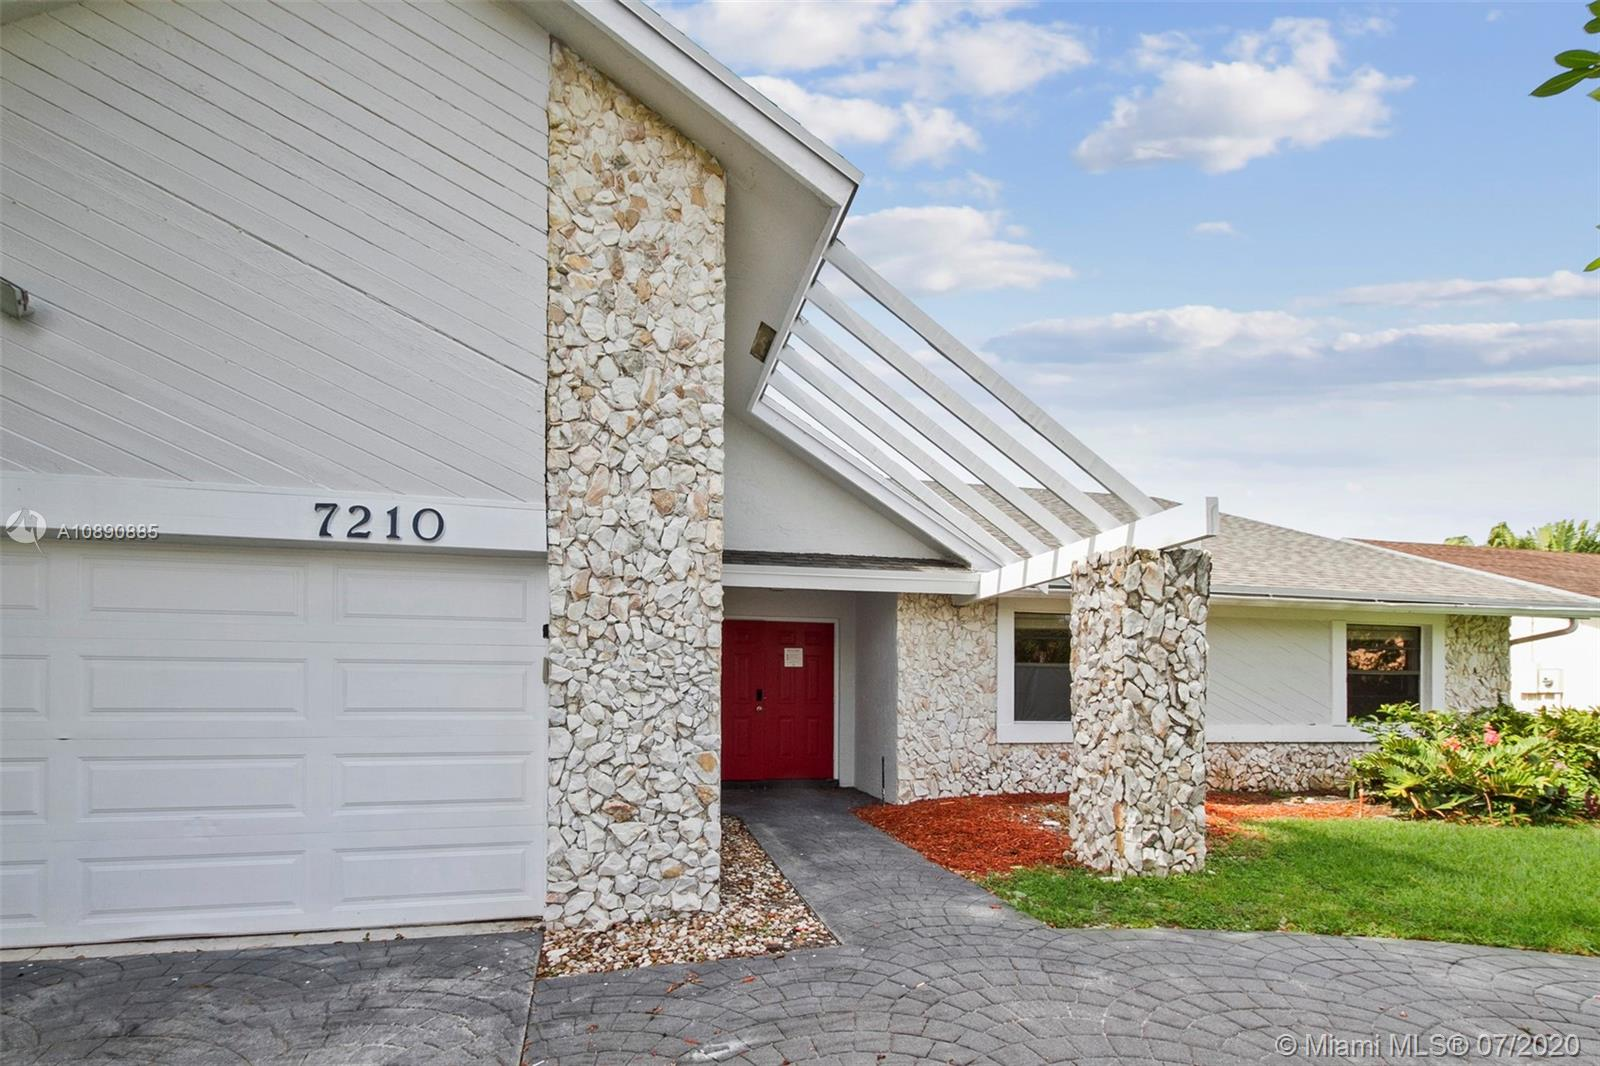 This 3 bedroom, 2.5 bathroom home in Lauderhill has canal waterfront access and a pool. Large windows make the home feel airy and bright. Check it out for yourself!